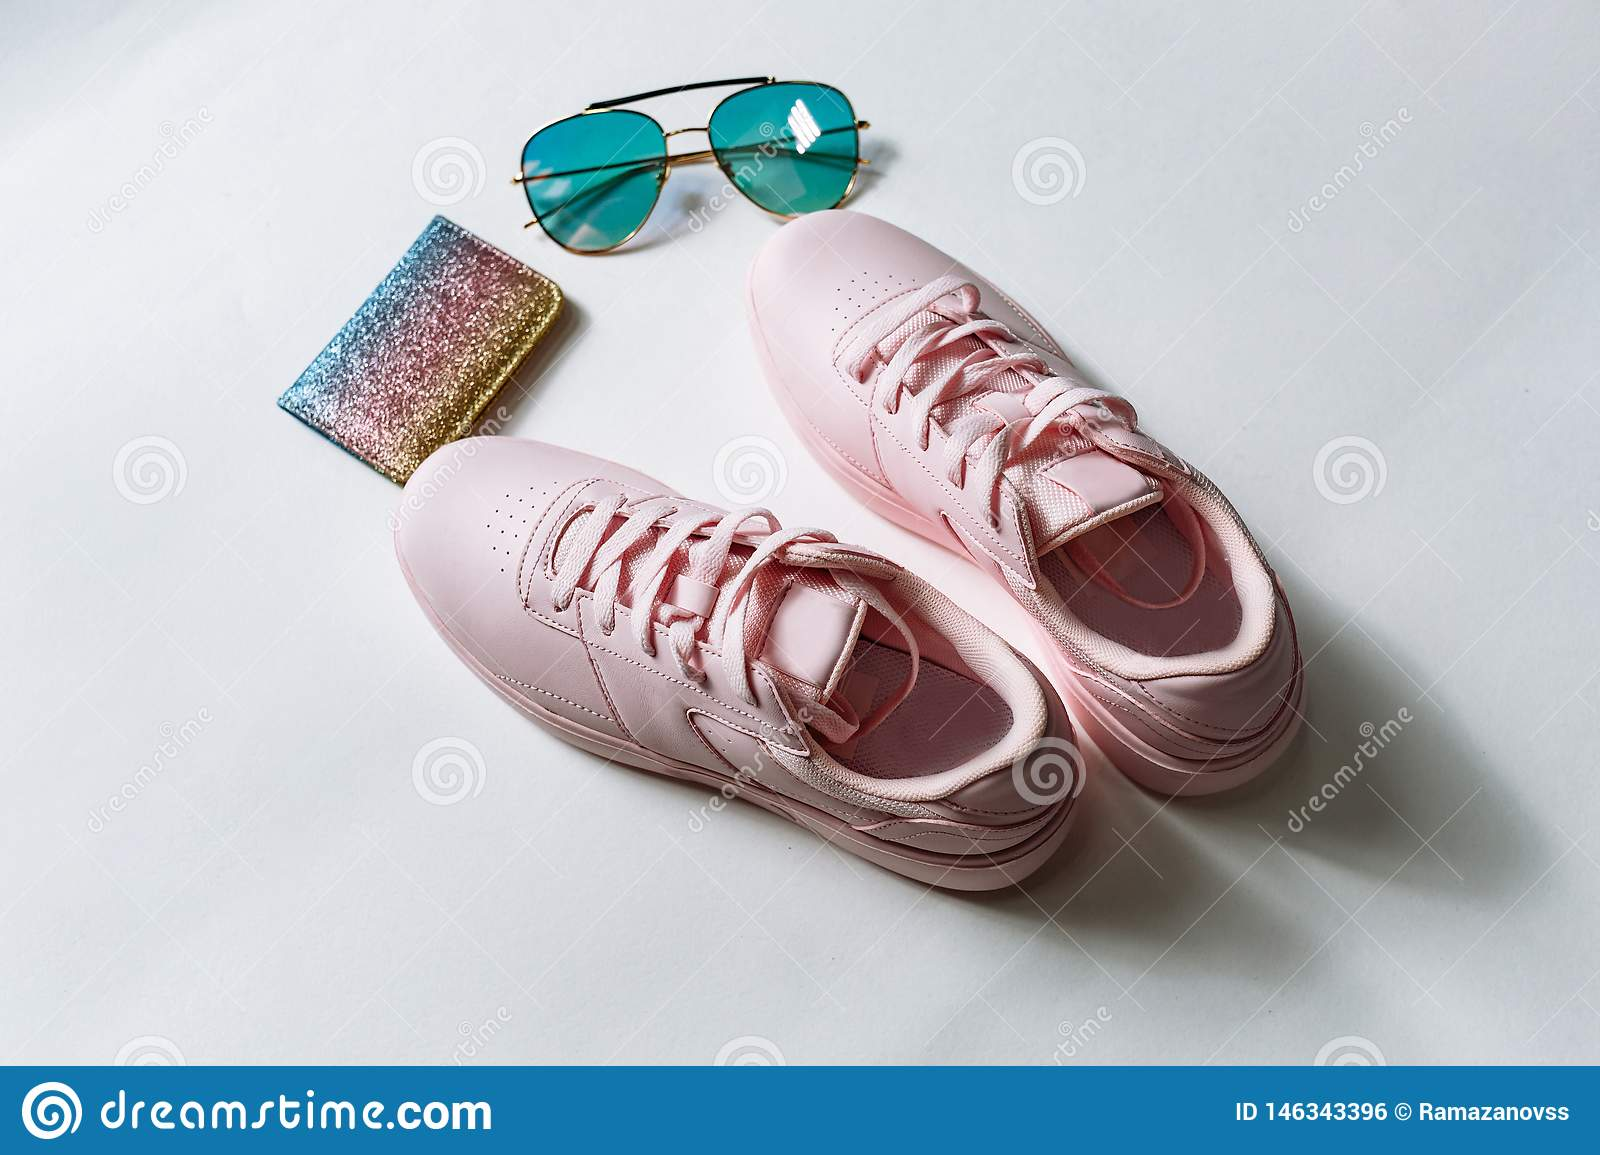 A pair of pink leather sneakers, a purse with multi-colored sequins and sunglasses with blue glass on a white background